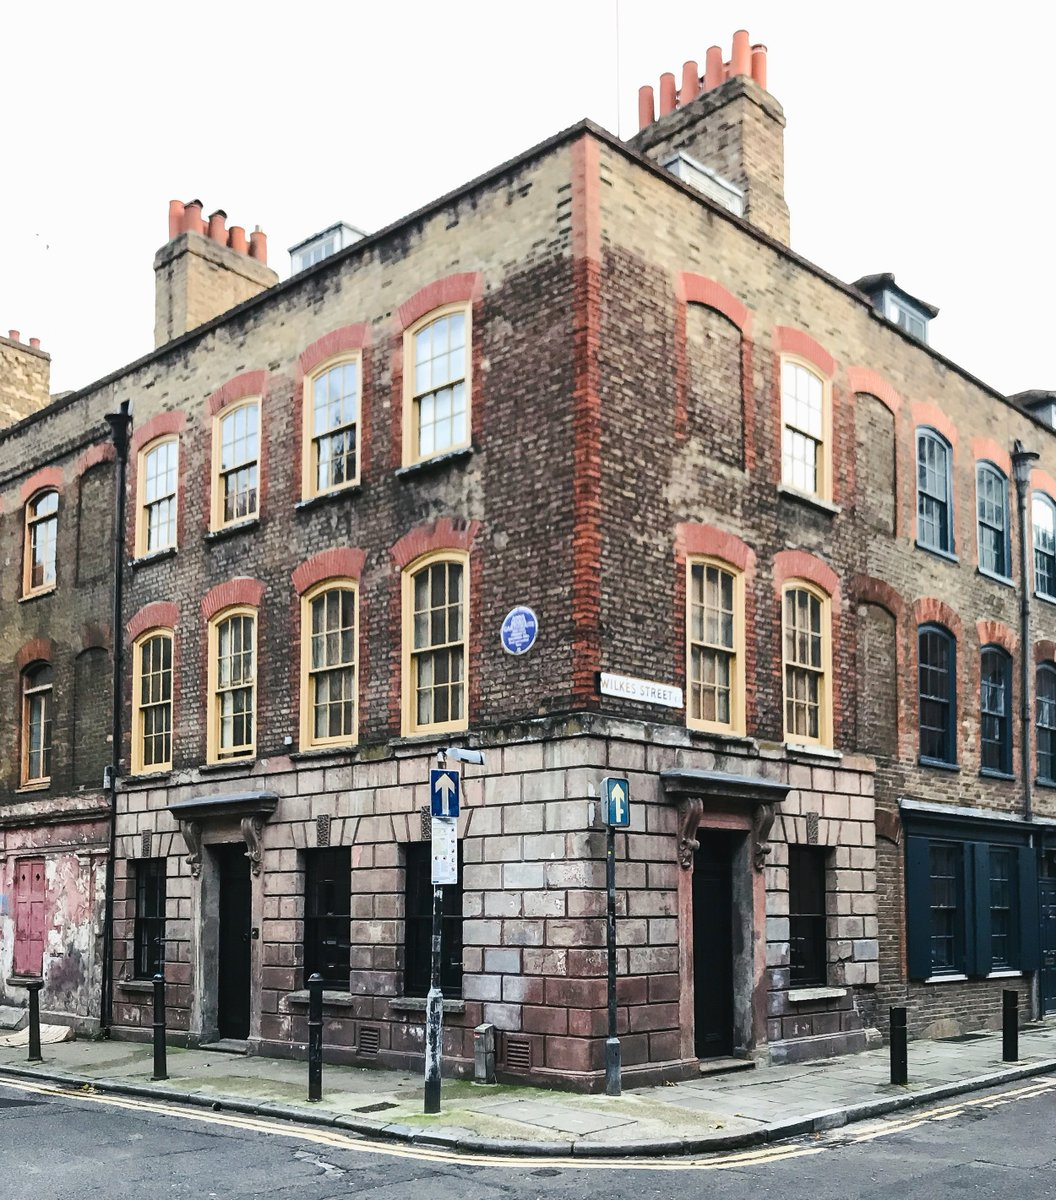 Anna Maria Garthwaite's home in Spitalfields, what is now 2 Princelet street. A three story brick home with large chimneys. It has eight windows on the top two stories, and a door and three windows on the first. It is a corner. Image via: https://www.skyeoneill.com/blog/2017/11/10/spitalfields-houses-anna-maria-garthwaite